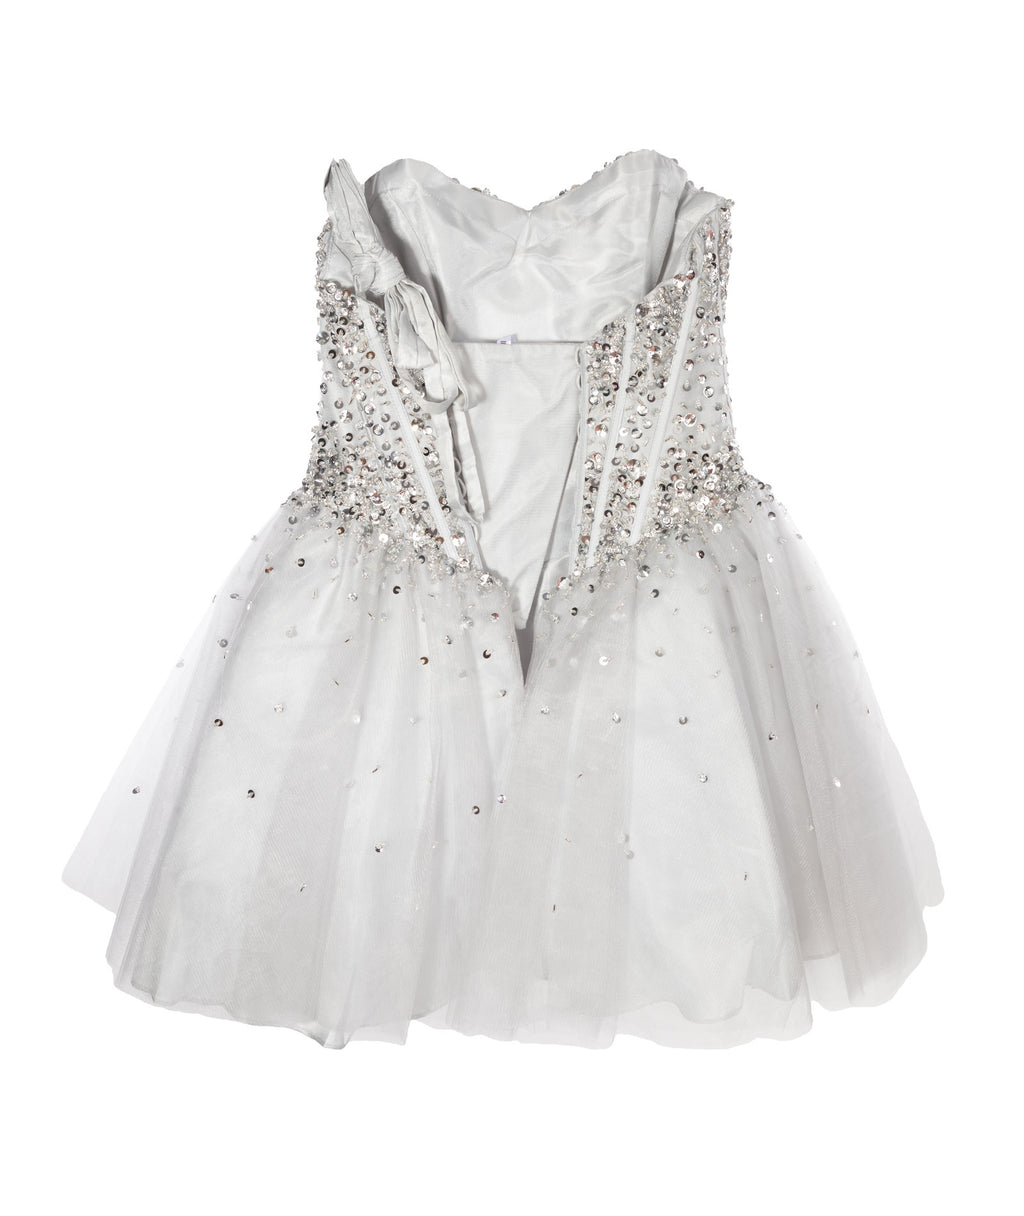 Jovani Girls All Silver Beaded Corset Dress